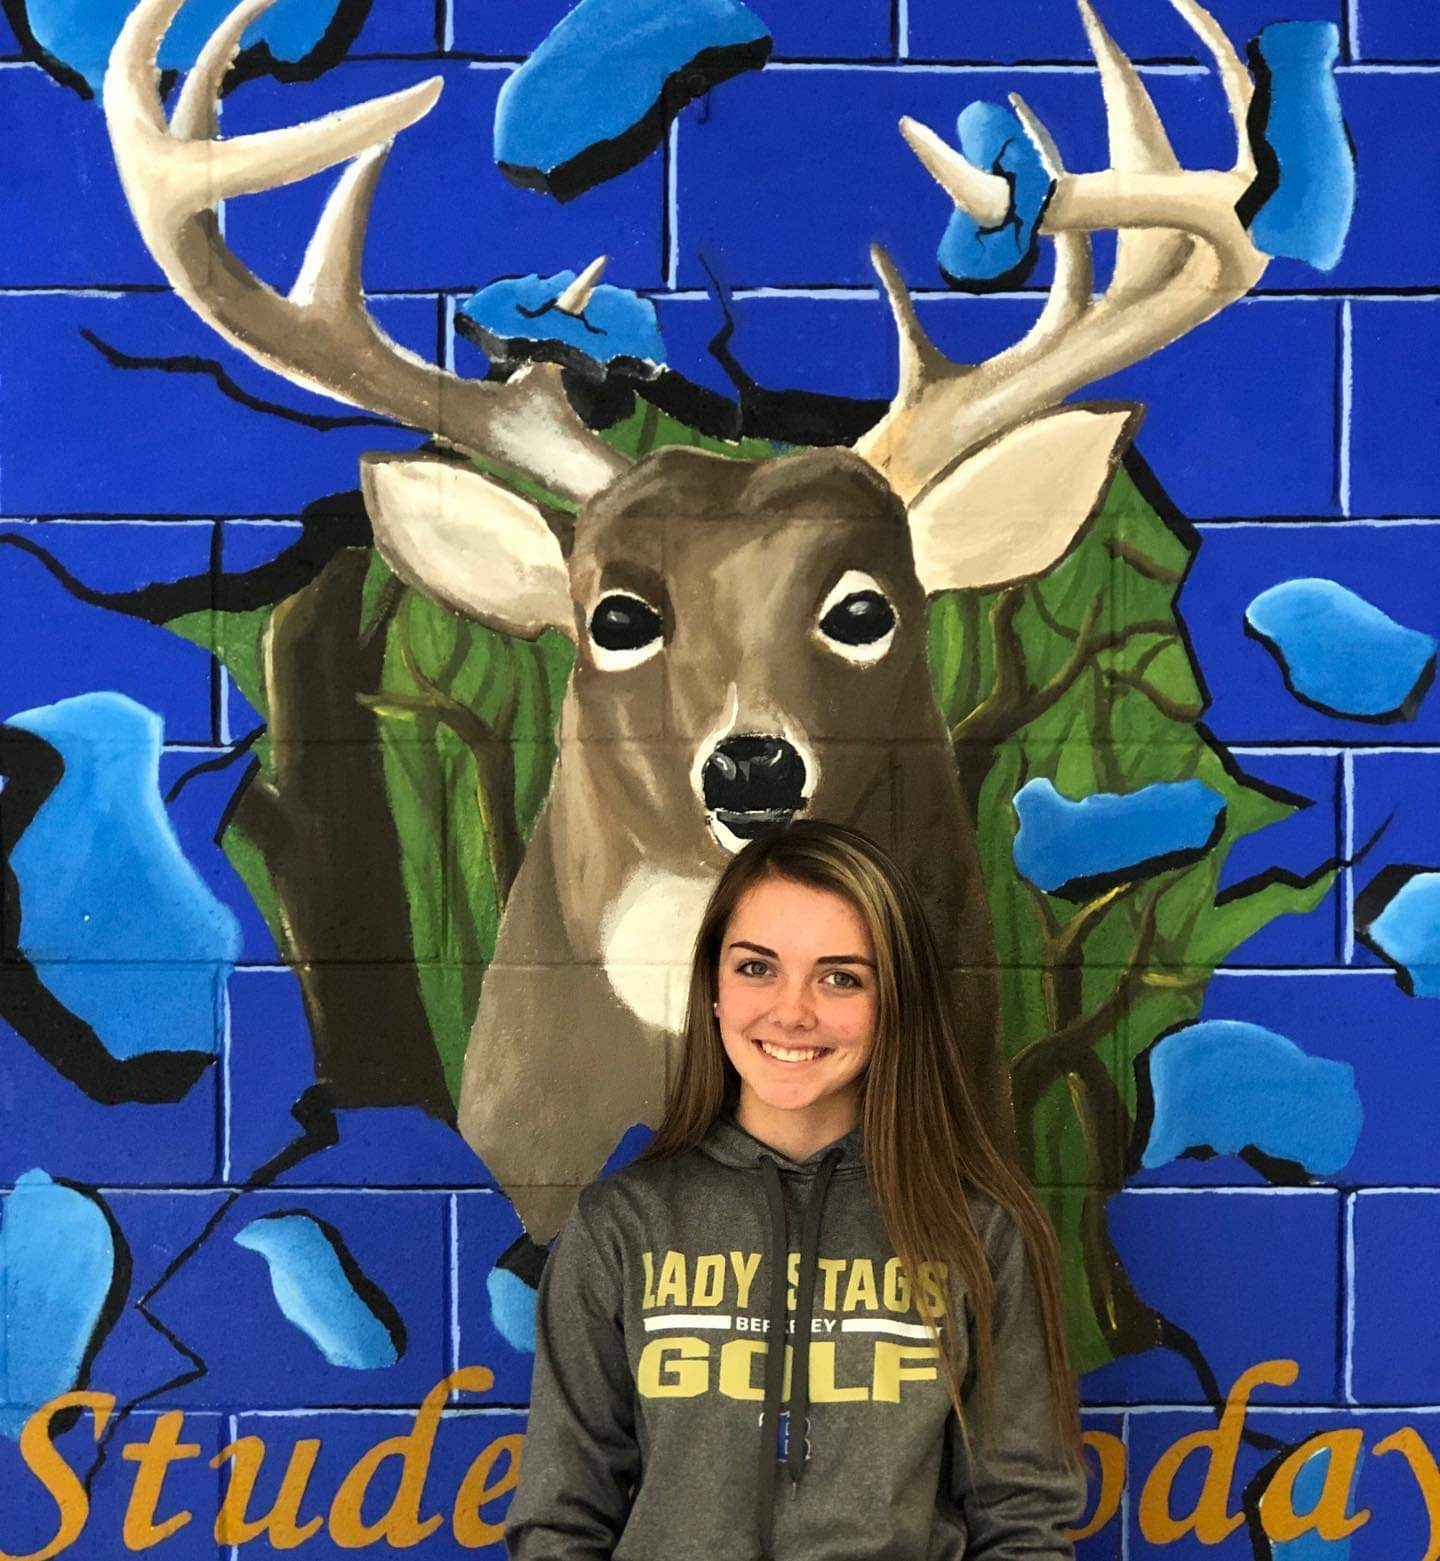 Mittie Borden who is our athlete of the week!